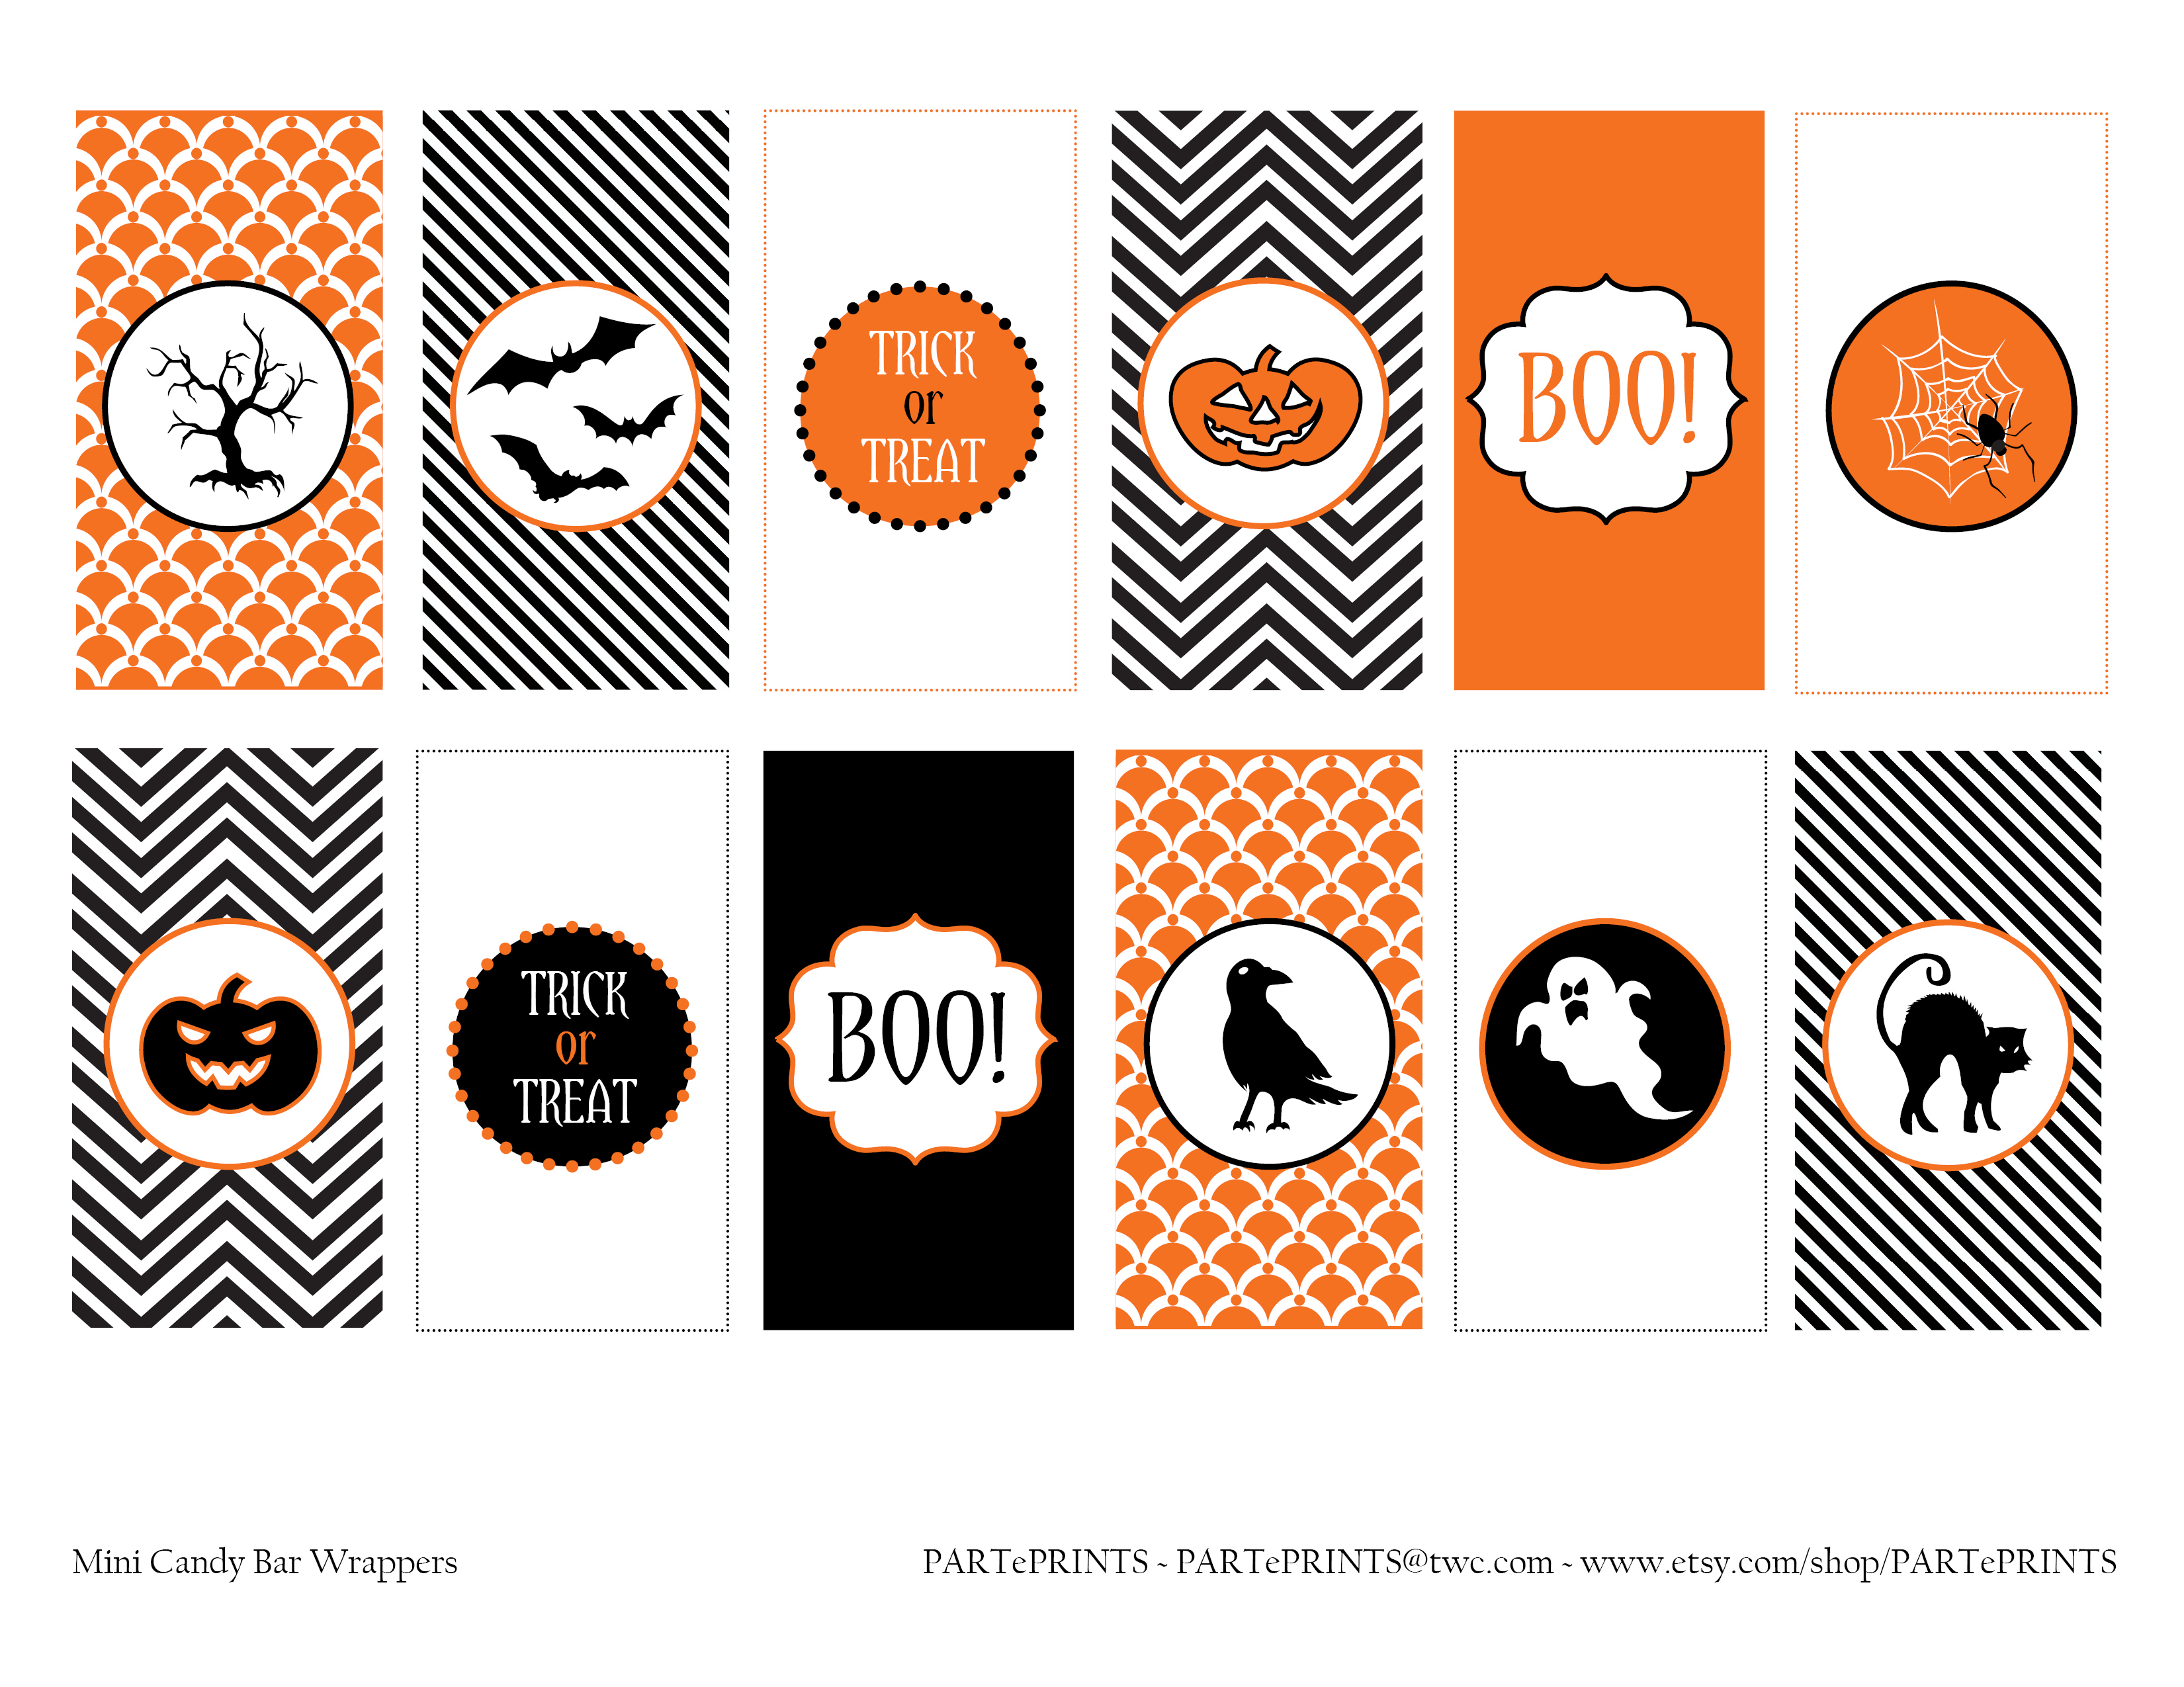 Free Halloween Printables From Parteprints | Catch My Party - Free Printable Halloween Banner Templates